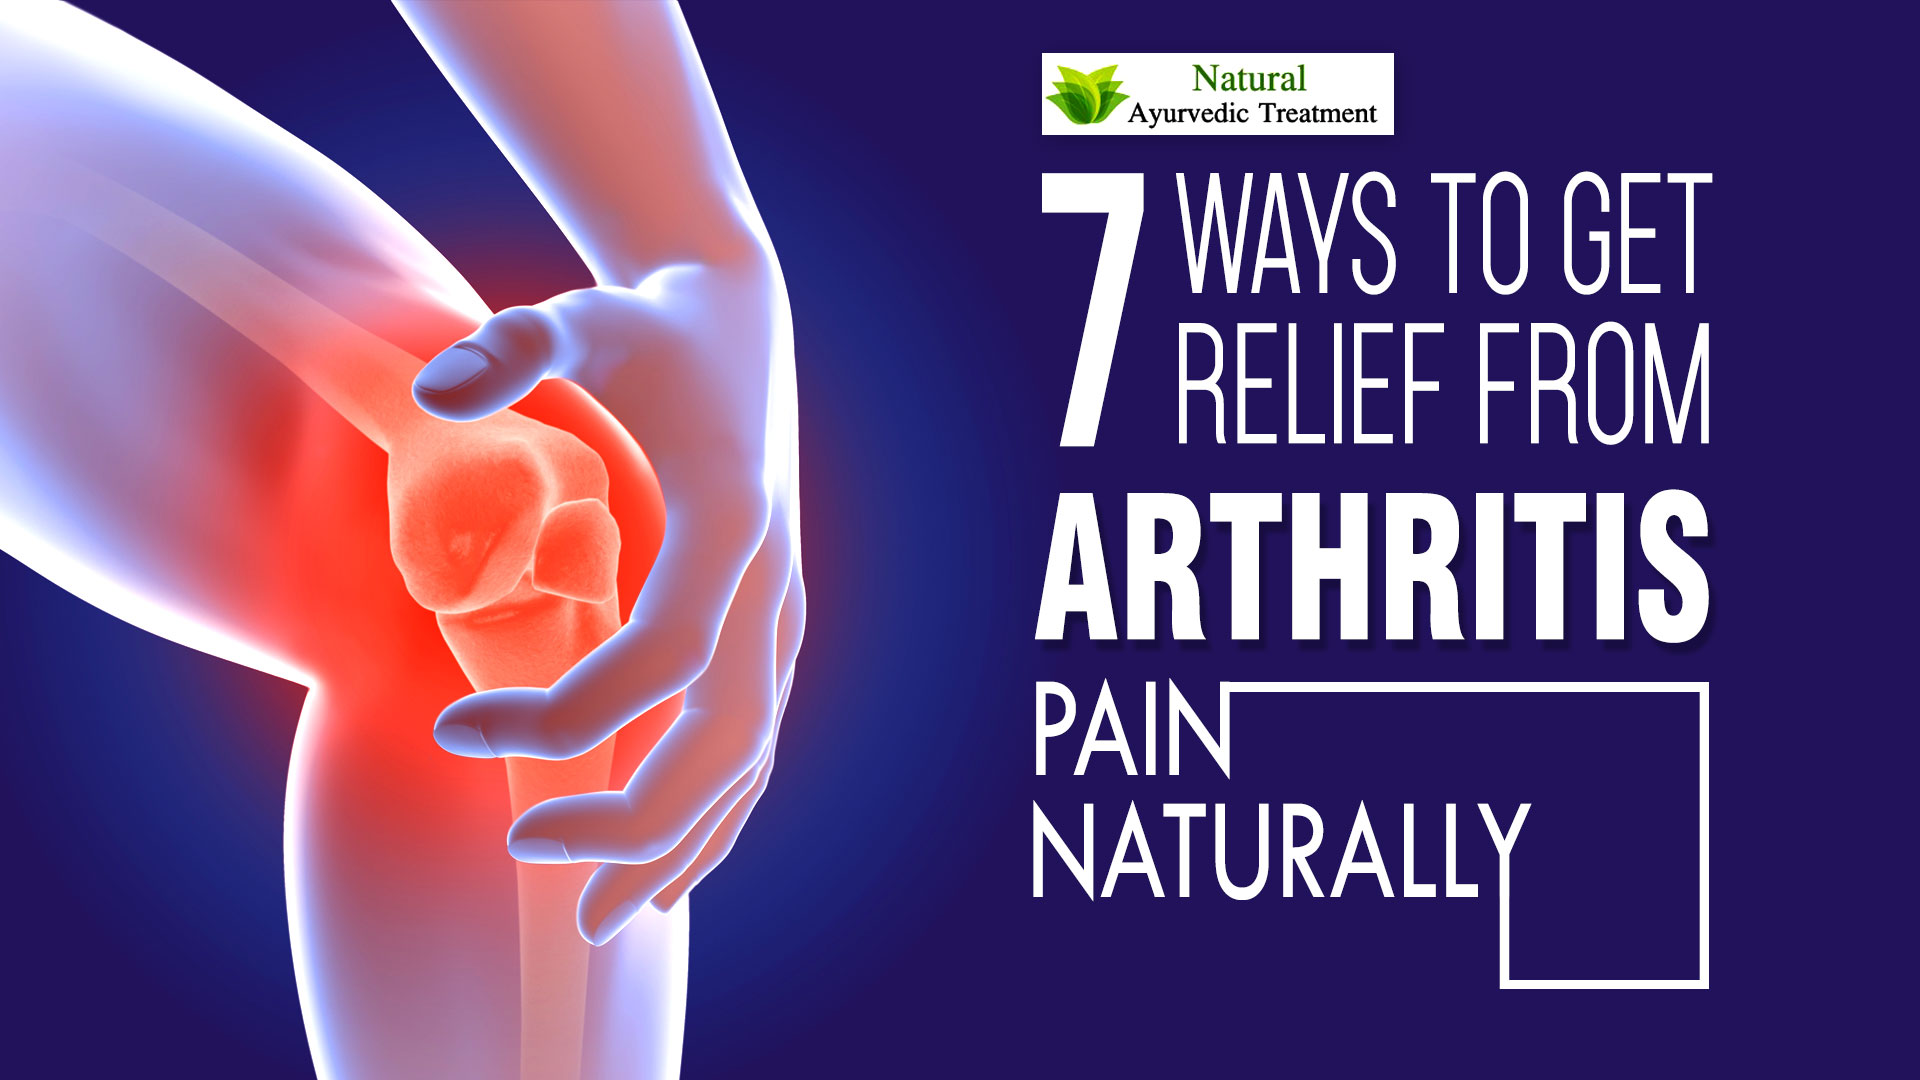 7 Ways to Get Relief from Arthritis Pain Naturally